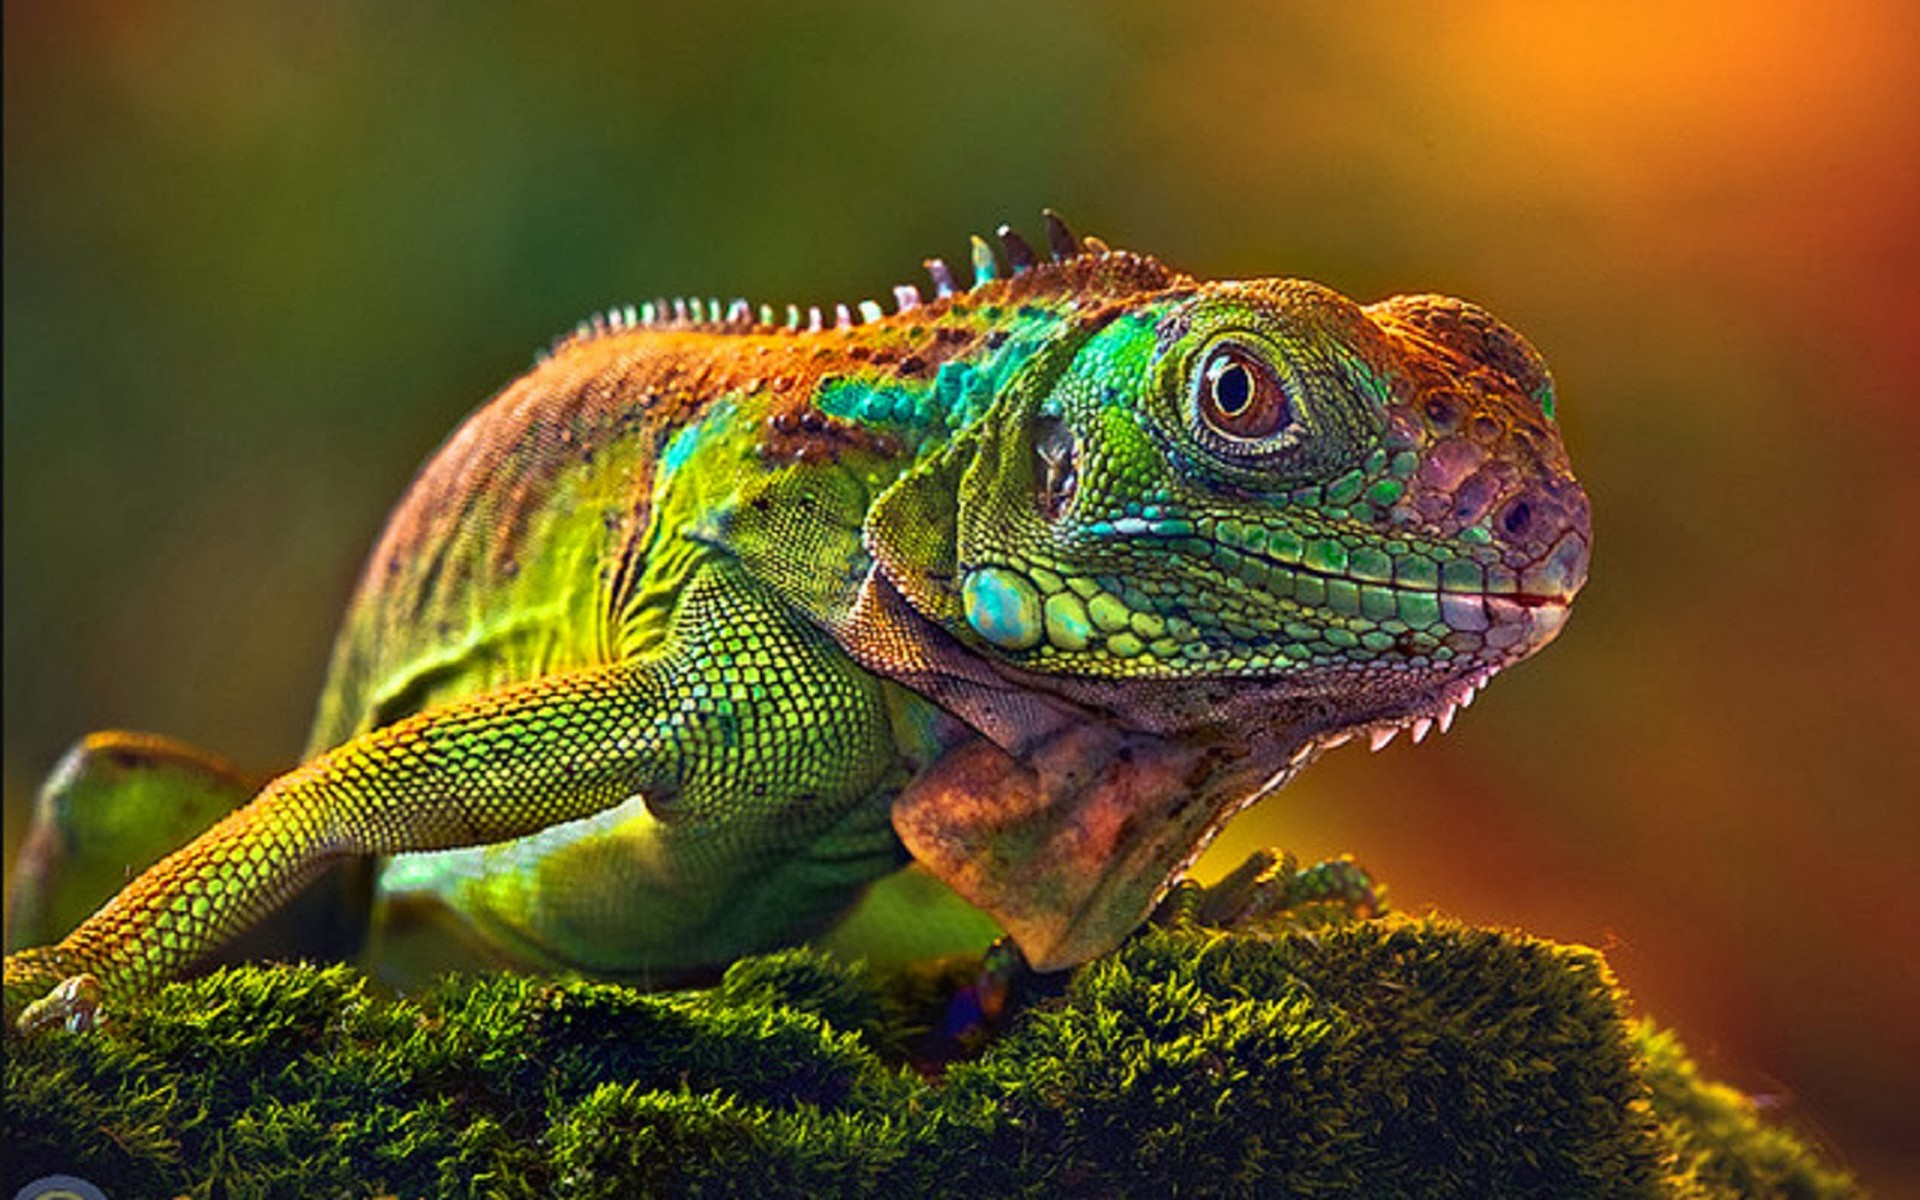 Wallpaper-HD-Camaleon-Some-lizards-change-color-very-quickly-1920x1200